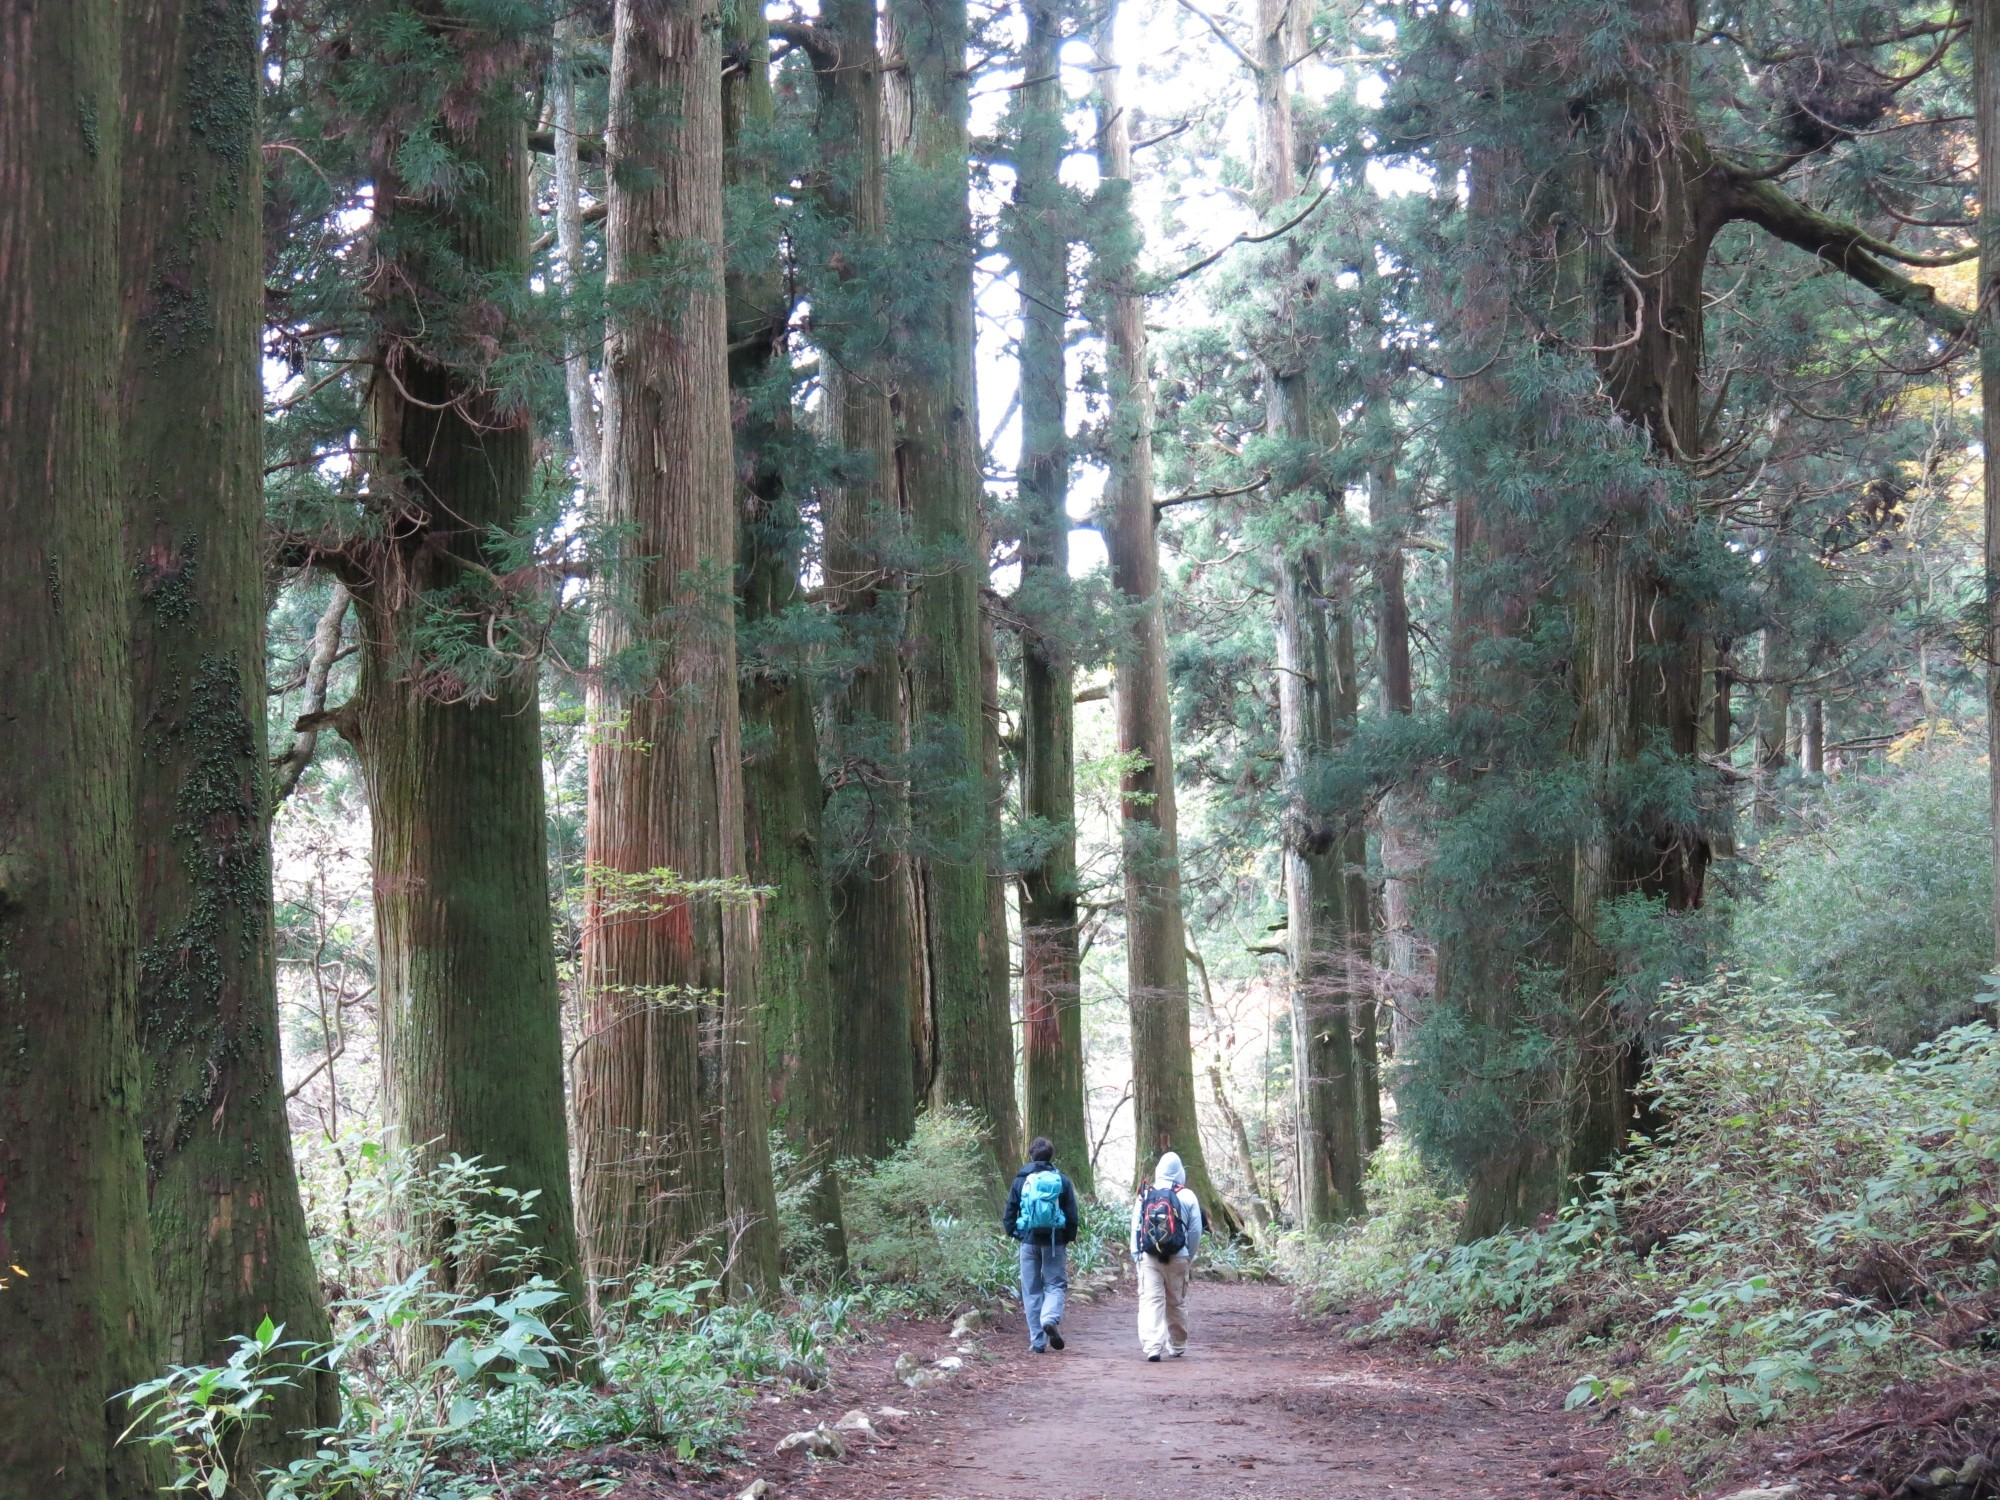 Tokaido_Trail_Walking_in_a_cedar_forest.jpg